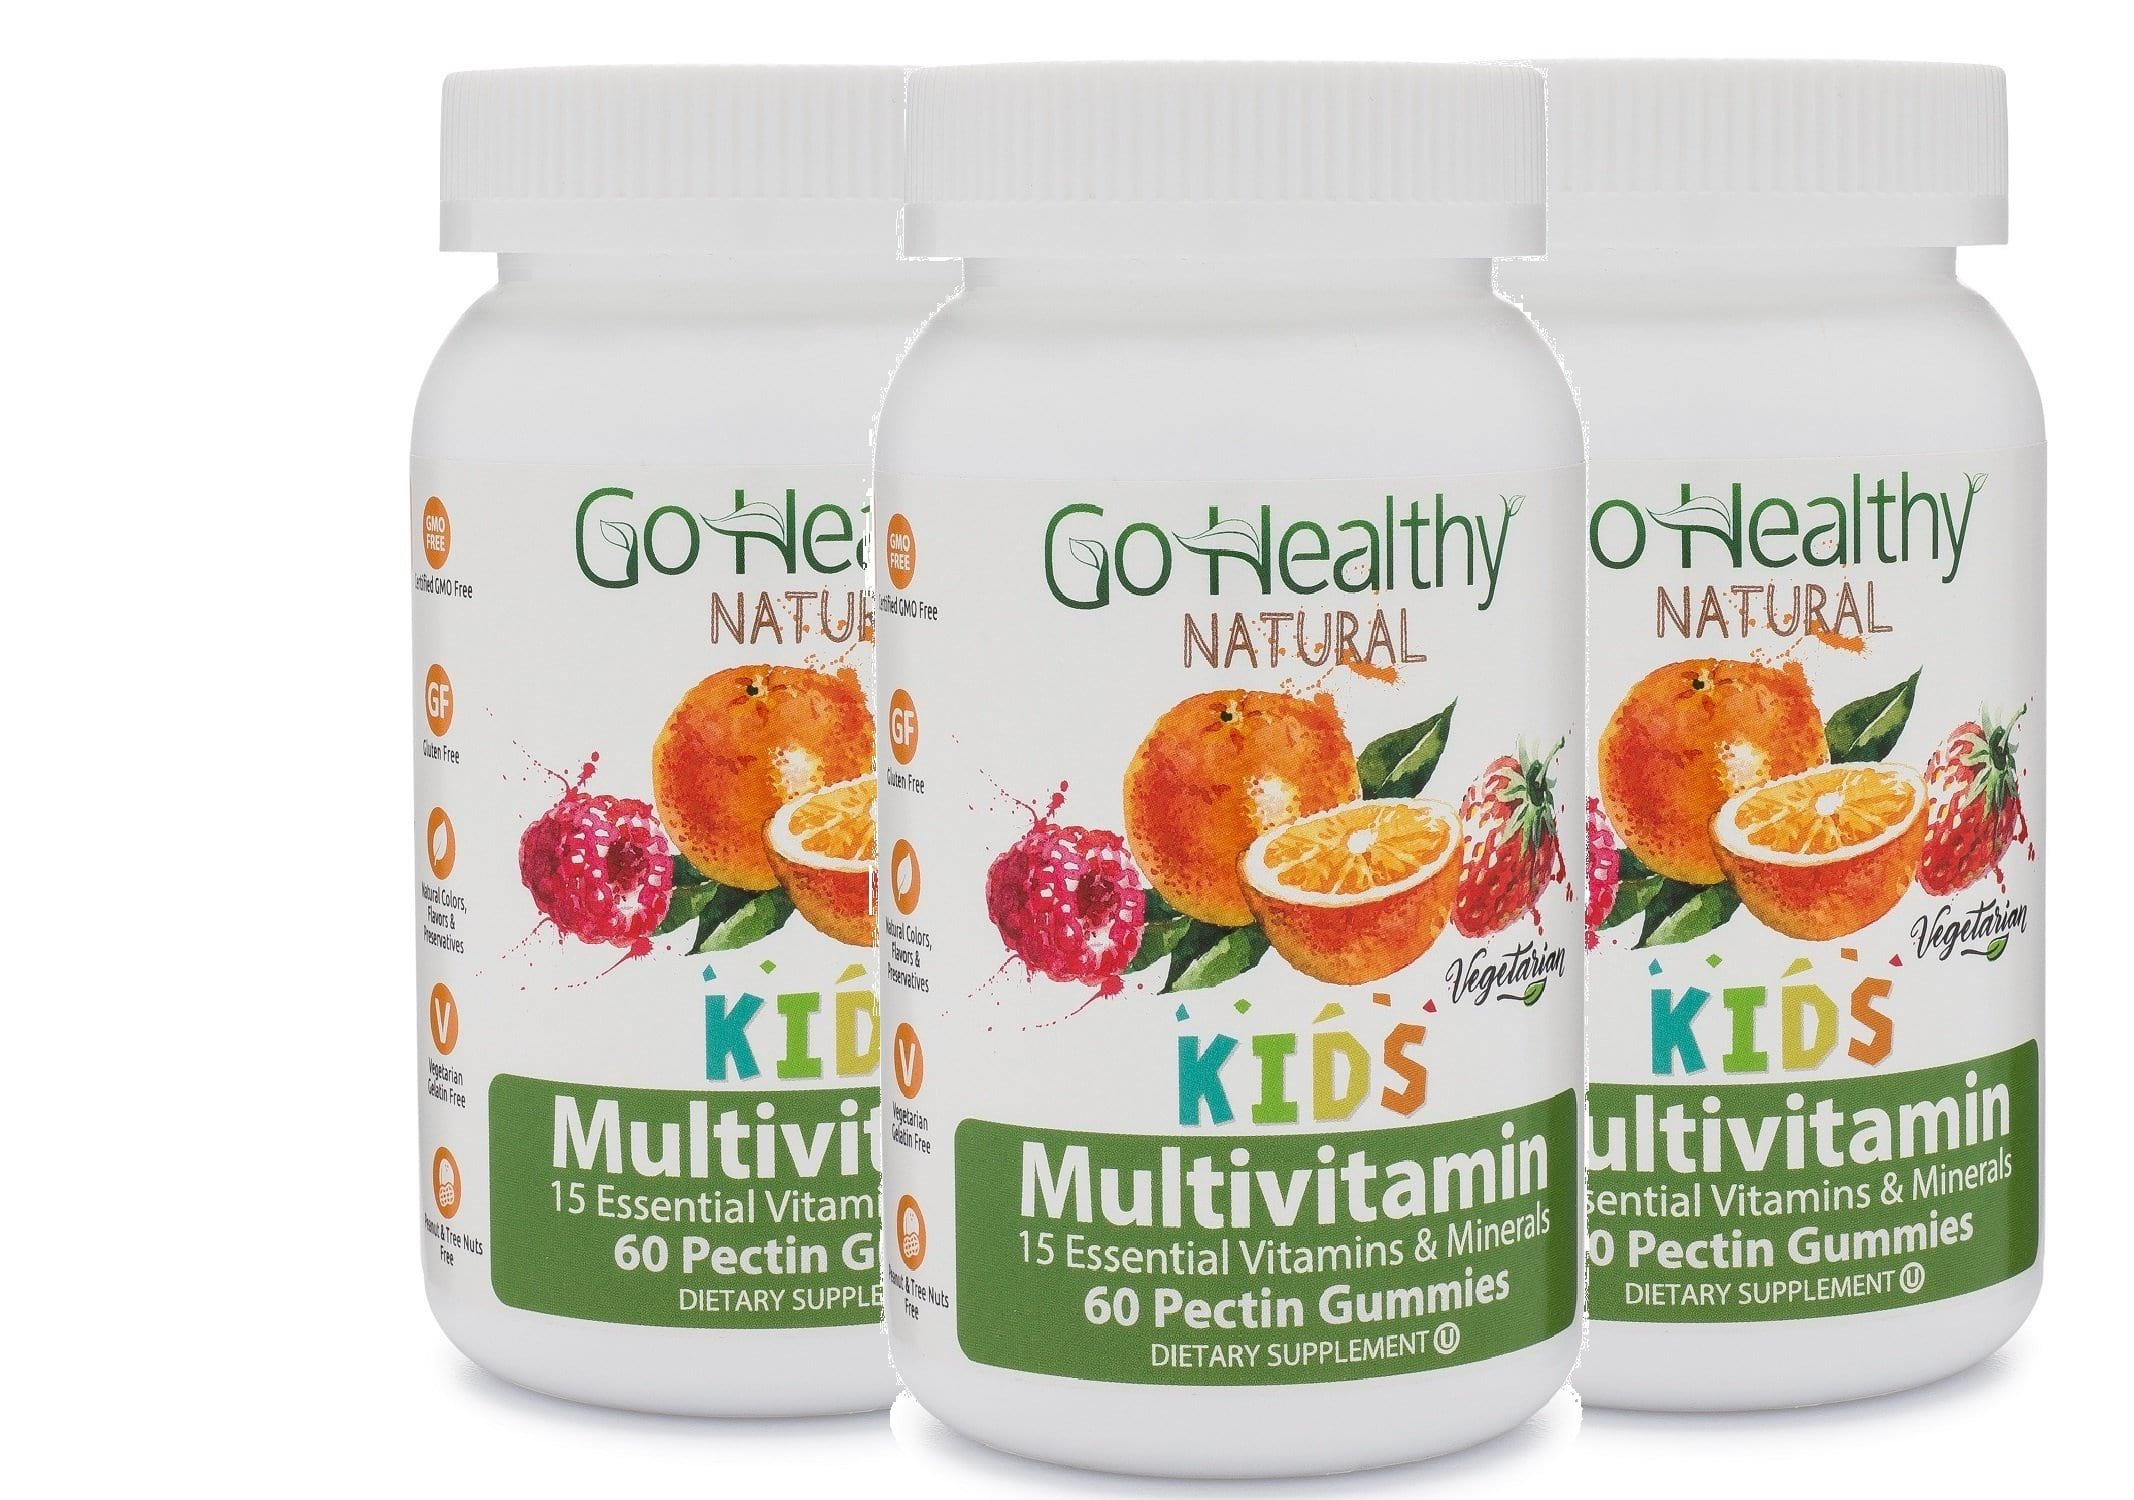 Multivitamin Gummy for Kids- 3 Pack: Fruit-Based, Vegetarian-15 Essential Vitamins (60)- 30 Daily Servings